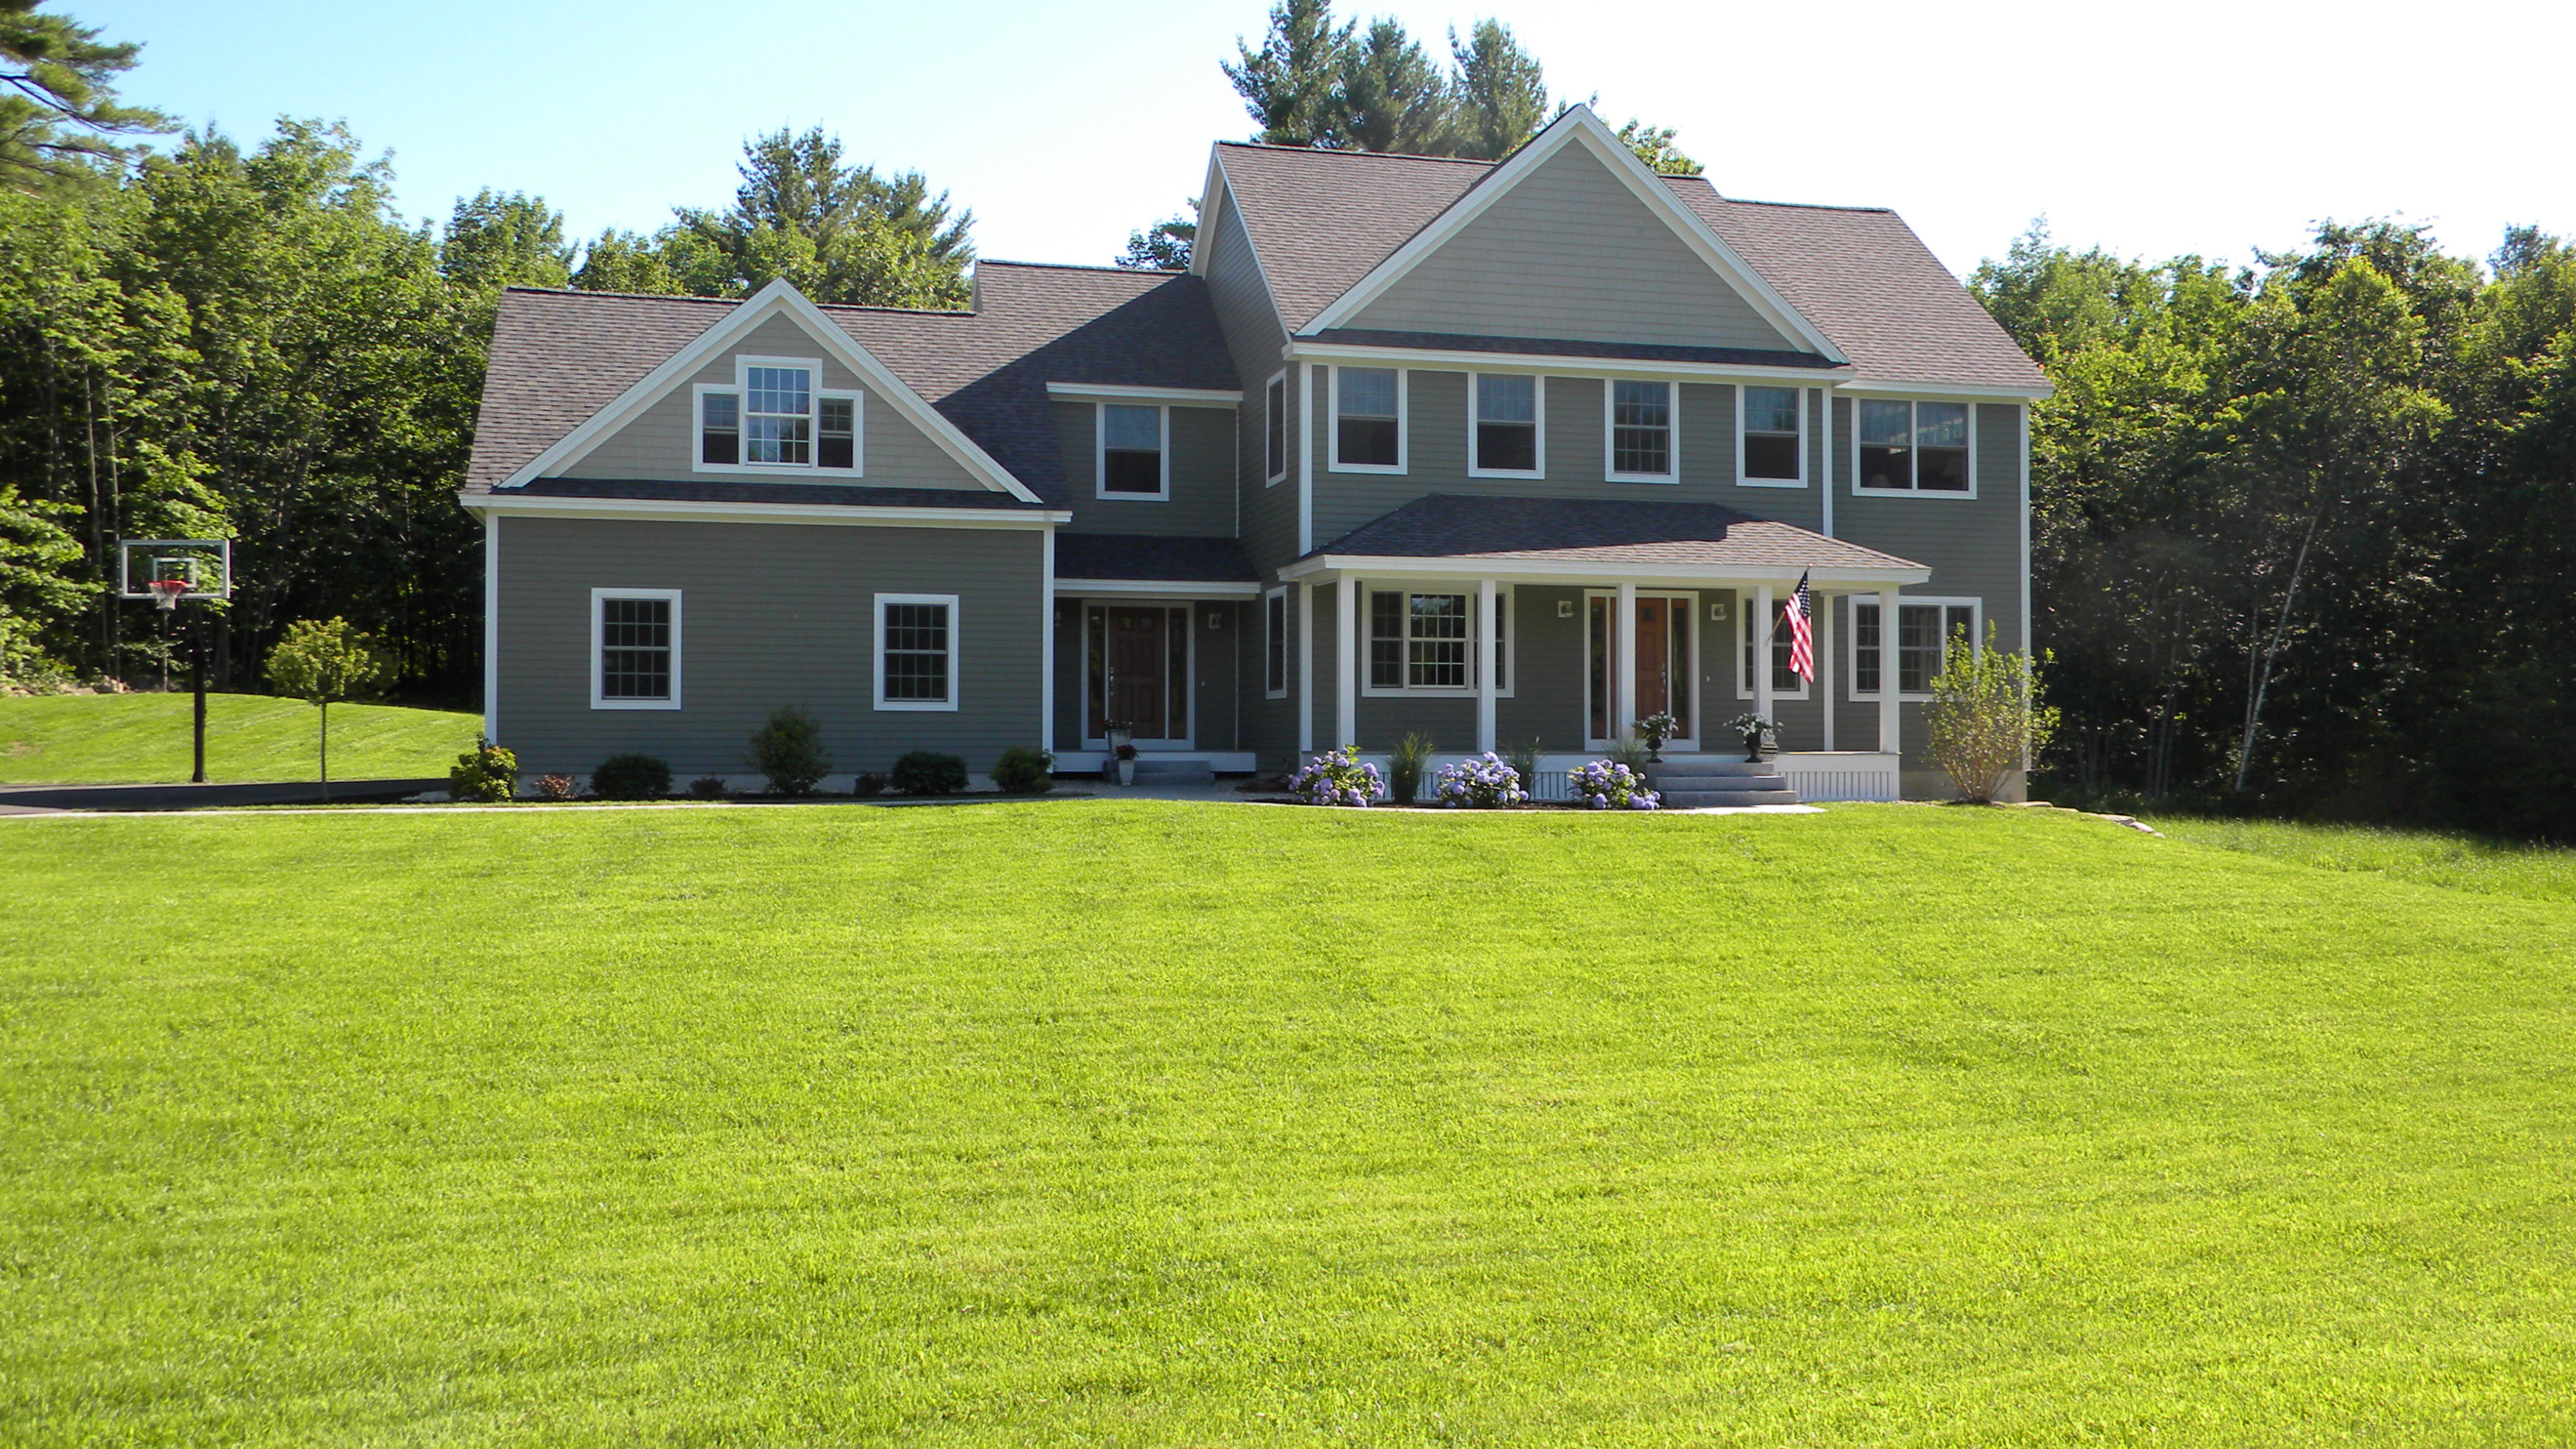 That s maine for ya home construction inc blog for Custom colonial homes